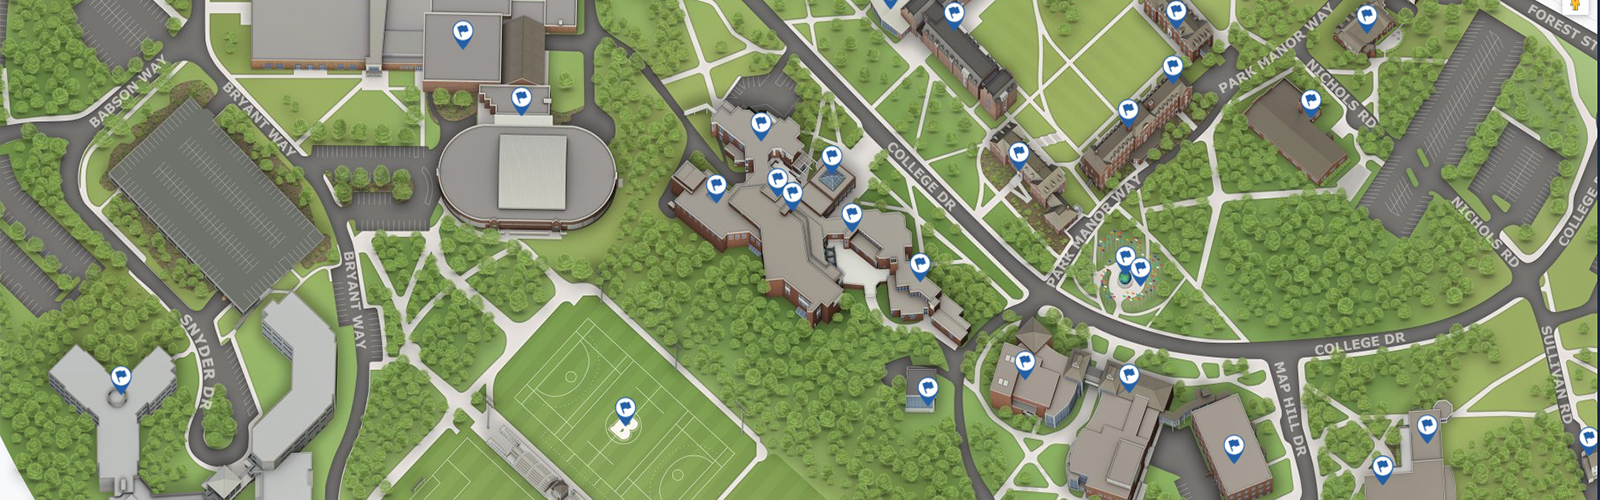 Babson Wellesley Campus Map